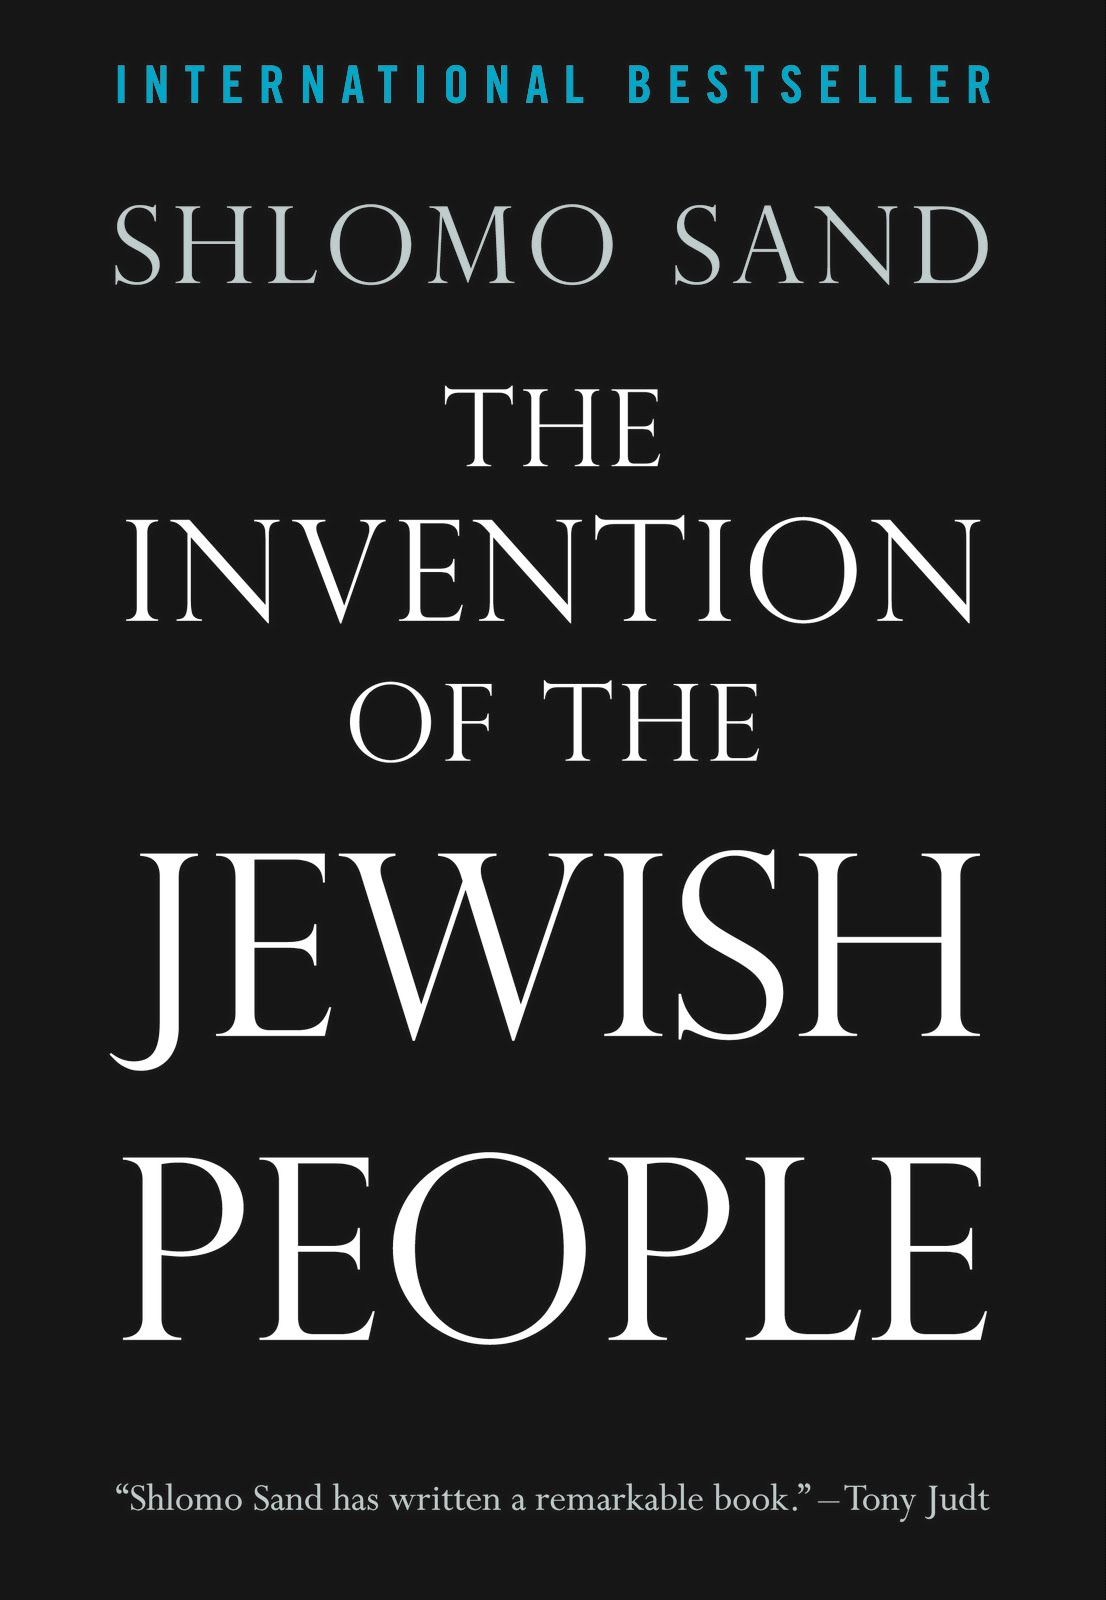 Shlomo+Sand+-+The+Invention+of+the+Jewish+People.jpg